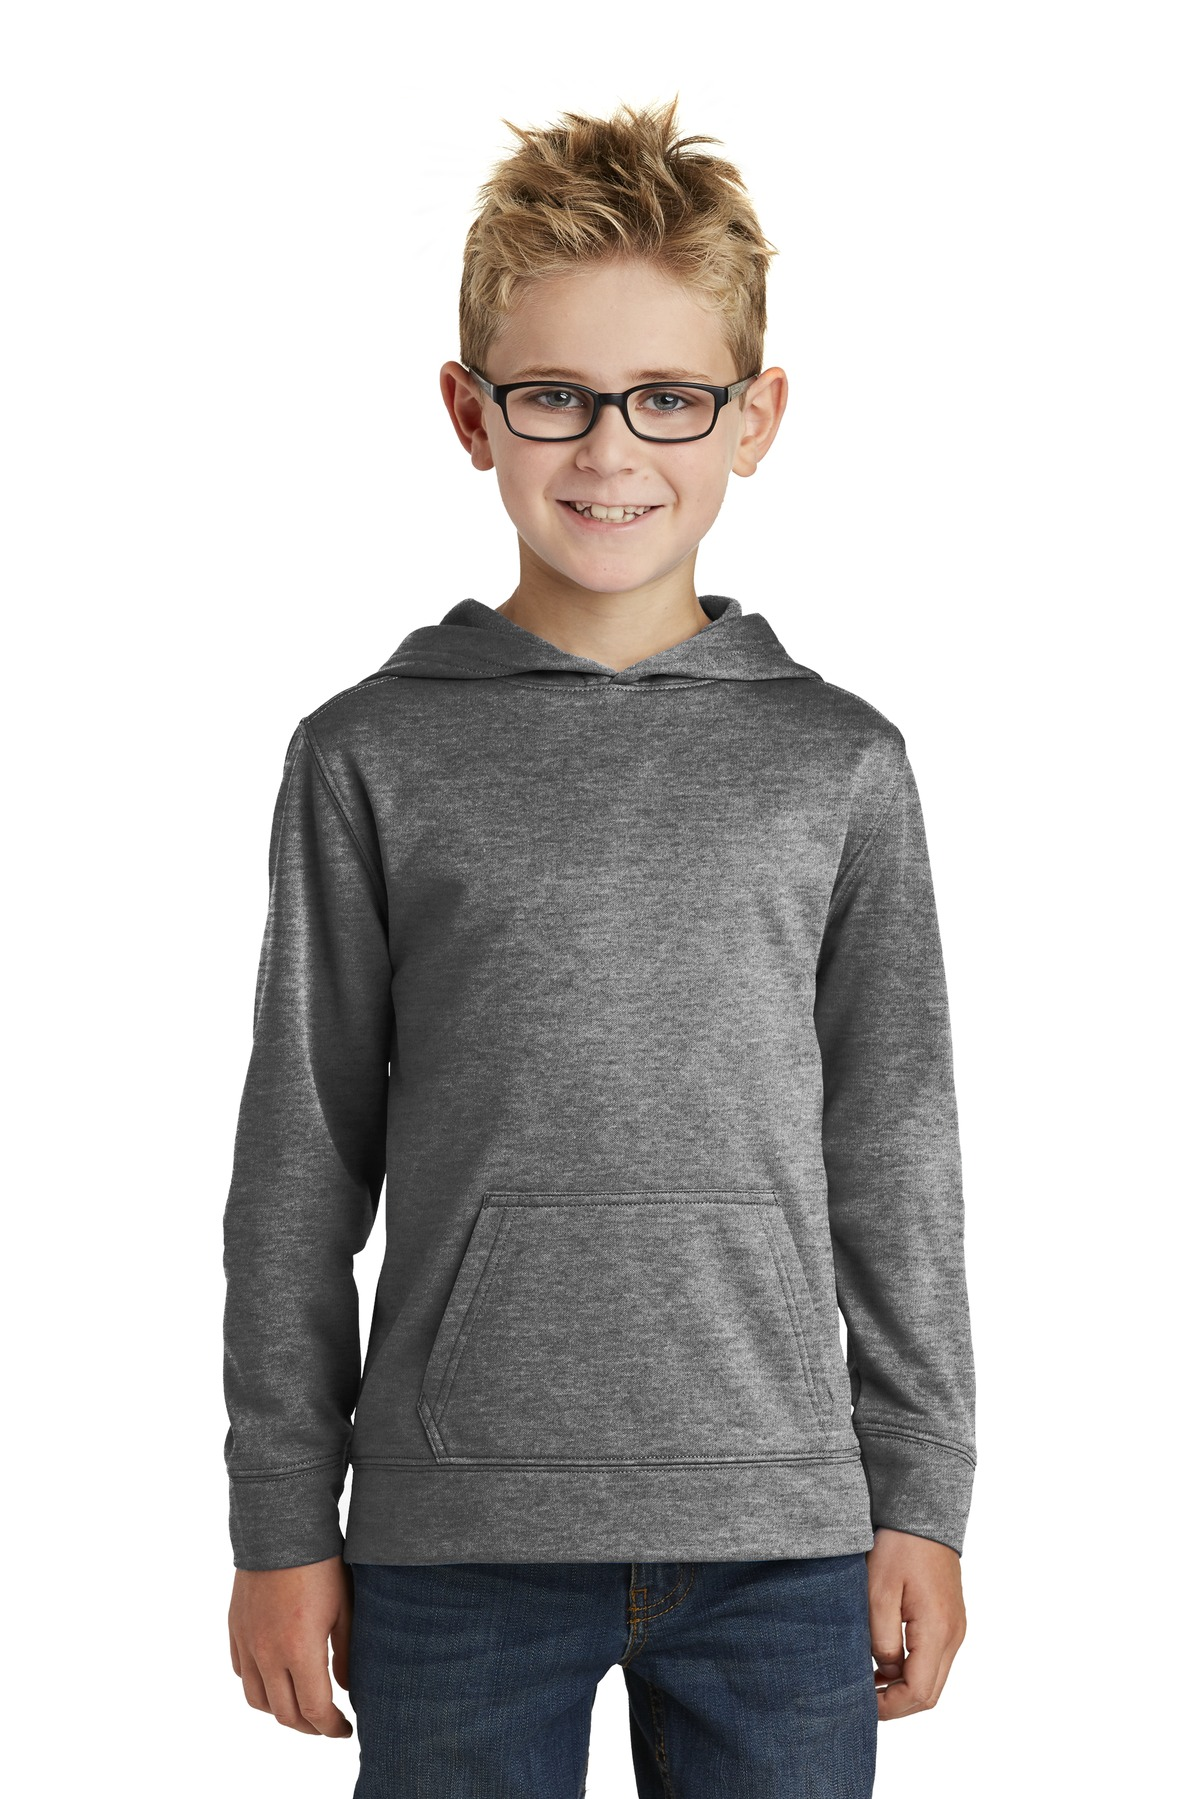 Port & Company ®  - Youth Core Fleece Pullover Hooded Sweatshirt.  PC90YH - Graphite Heather